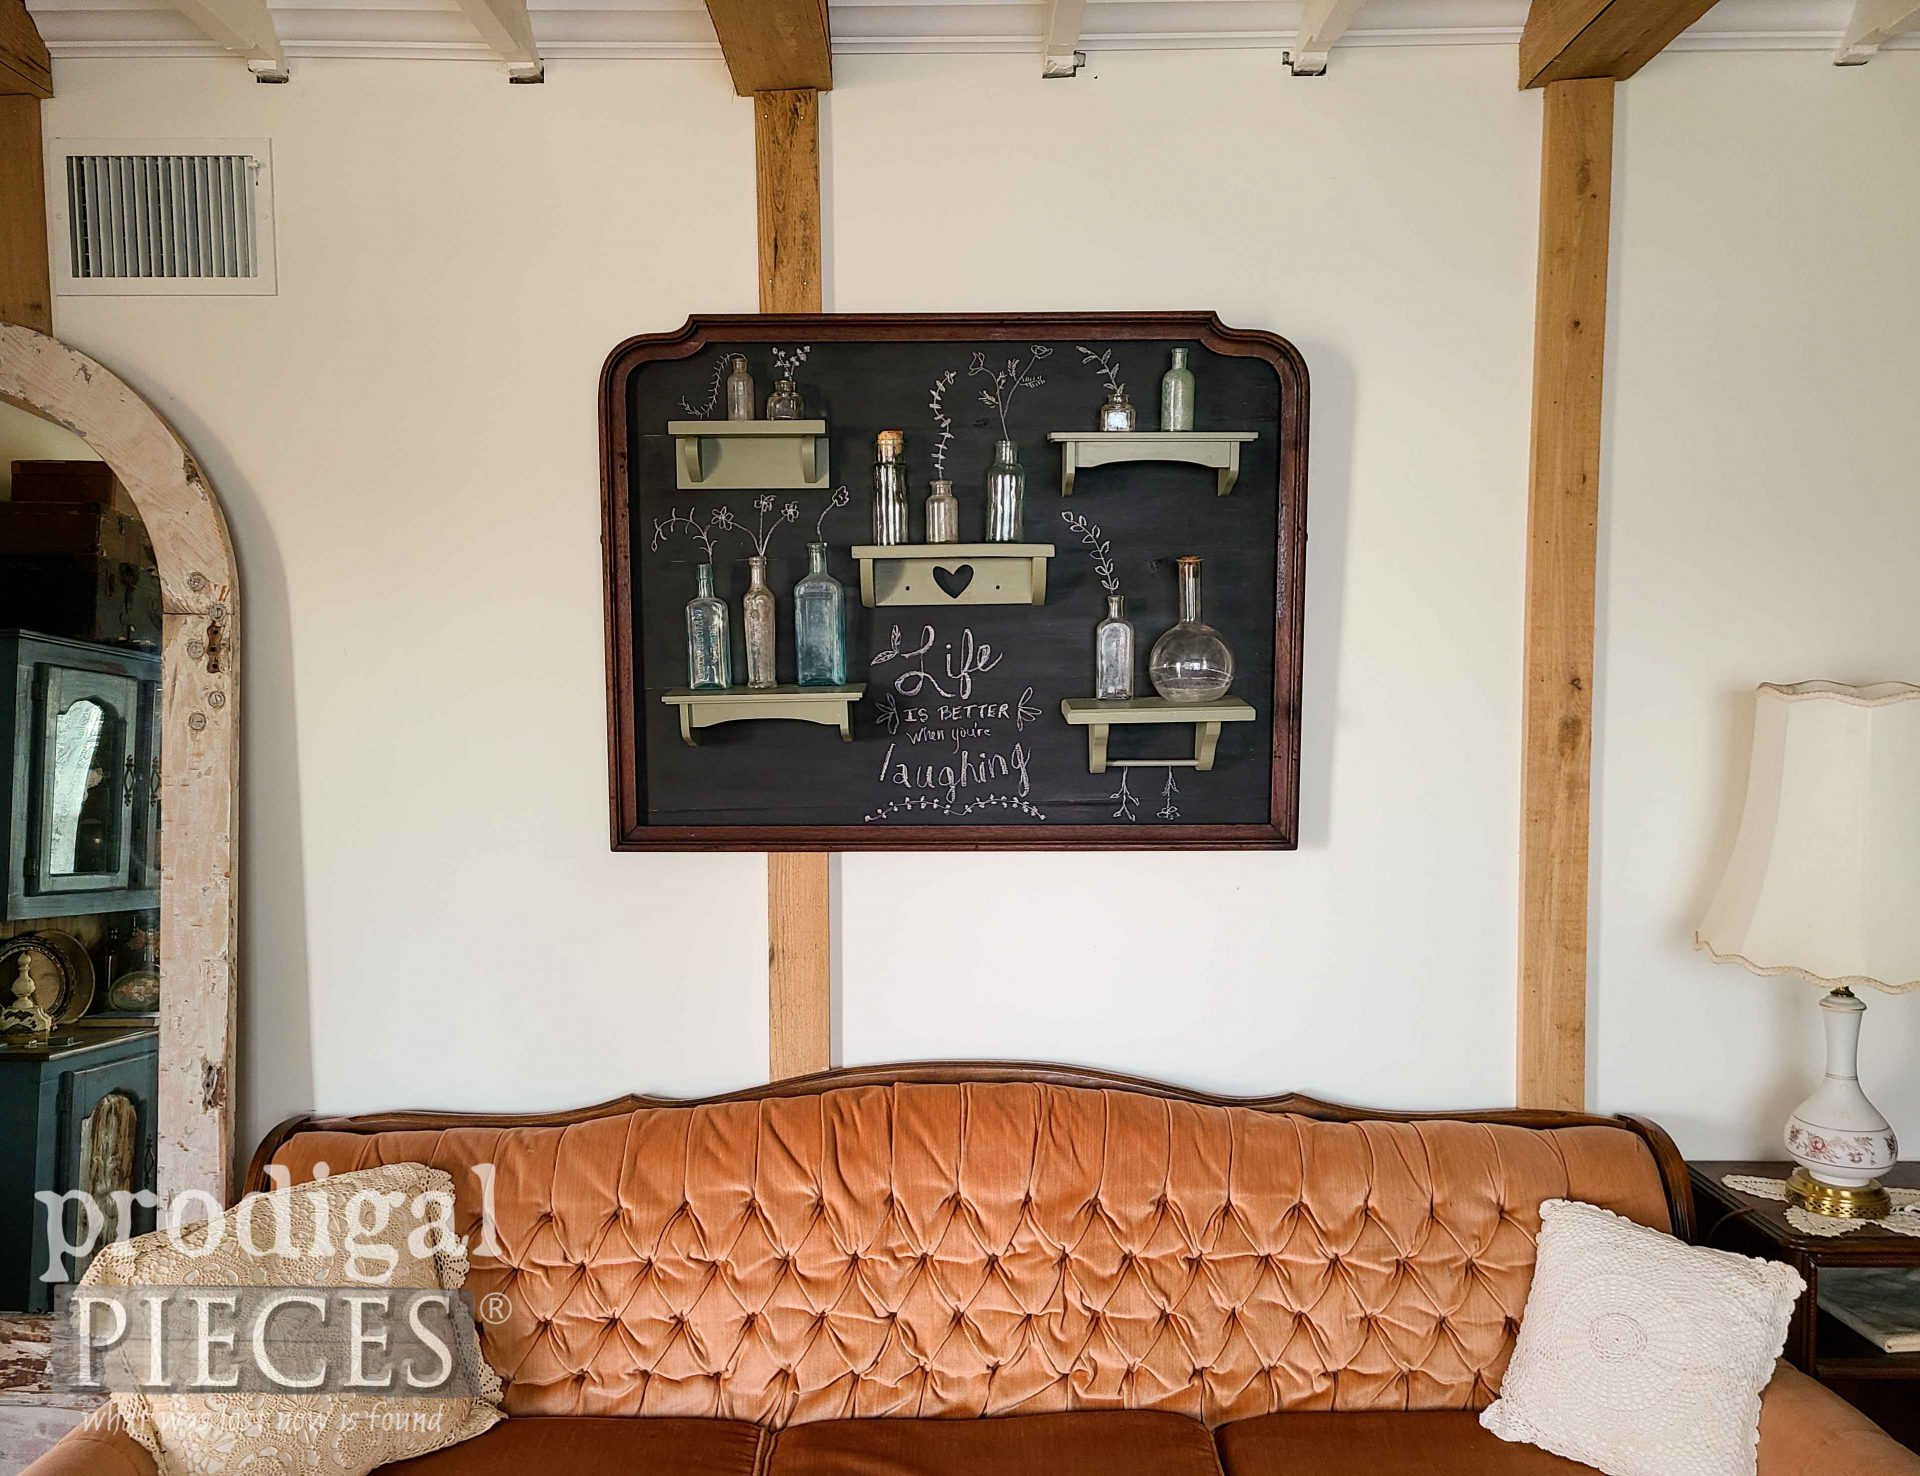 Vintage Style Living Room with Chalkboard Art by Larissa of Prodigal Pieces | prodigalpieces.com #prodigalpieces #vintage #diy #home